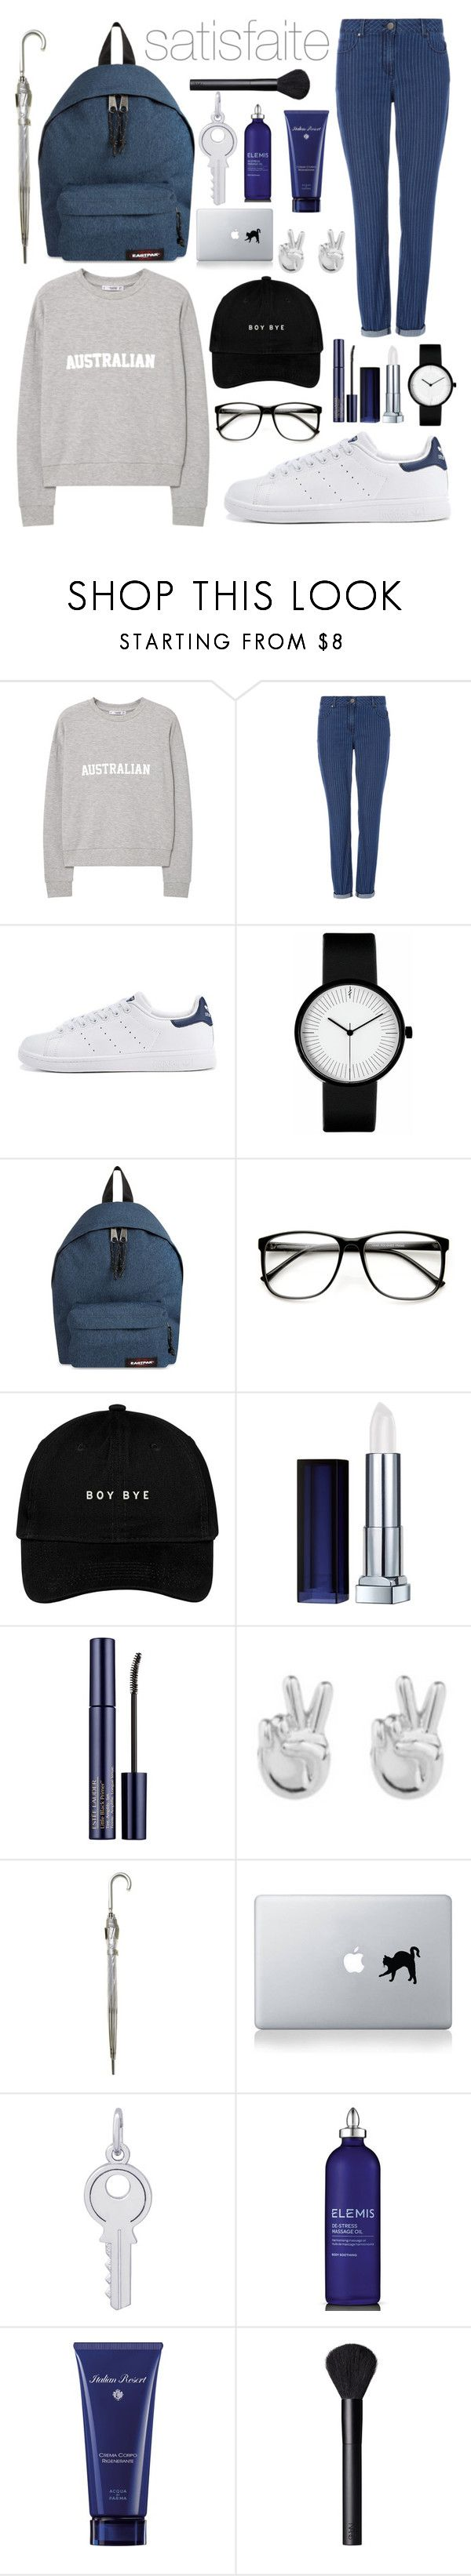 """""""satisfaite"""" by inesbrk ❤ liked on Polyvore featuring MANGO, adidas, Eastpak, ZeroUV, Maybelline, Estée Lauder, Rock 'N Rose, Fulton, Vinyl Revolution and Rembrandt Charms"""